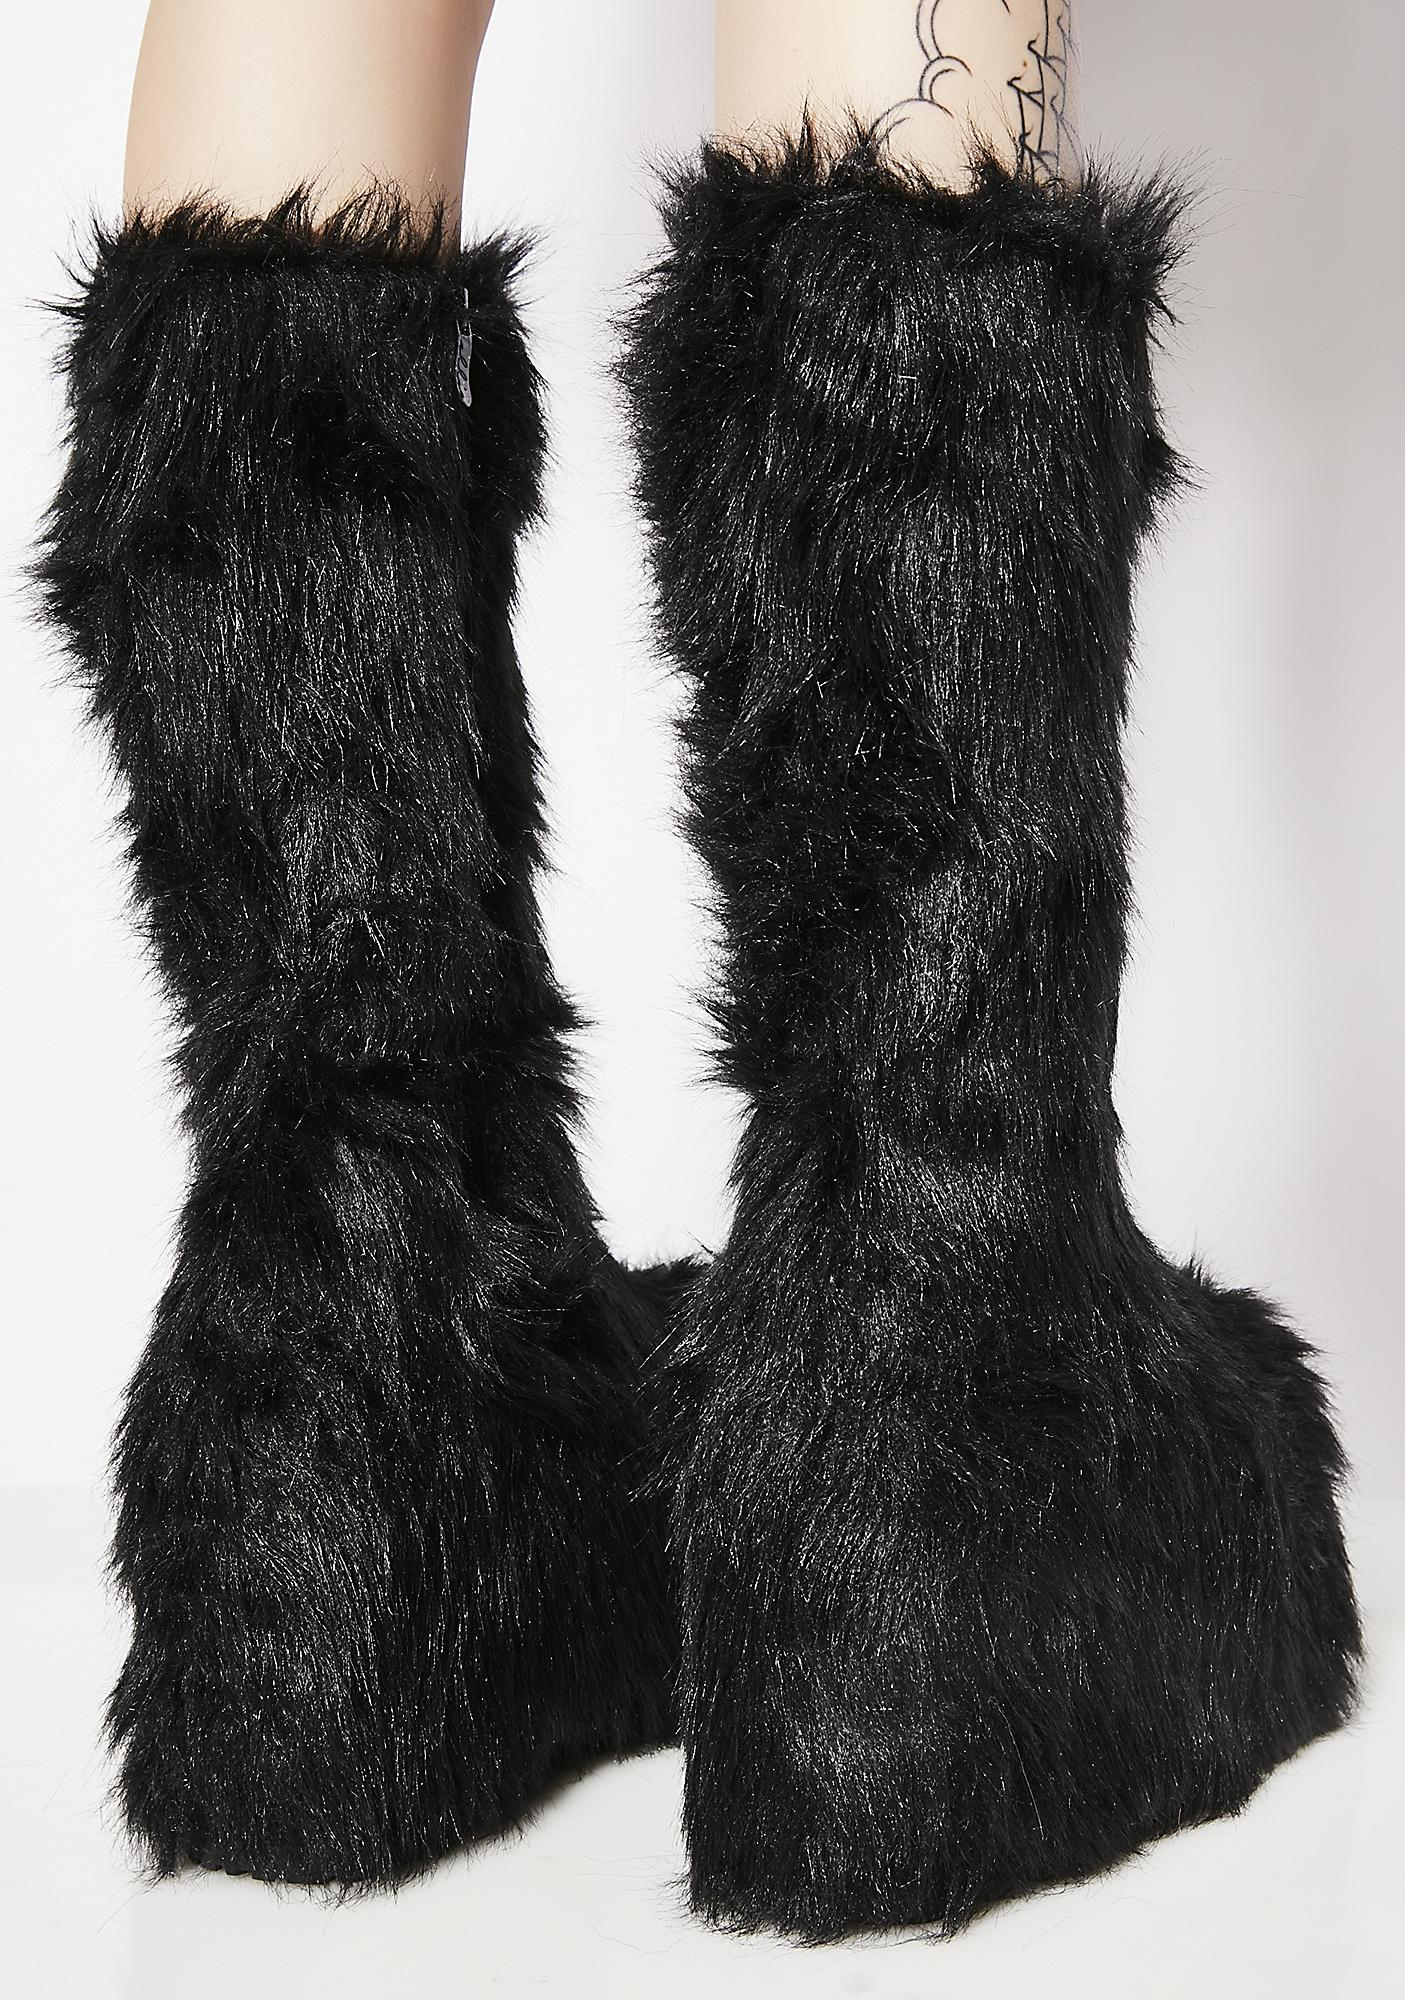 Party Monster Fuzzy Platform Boots